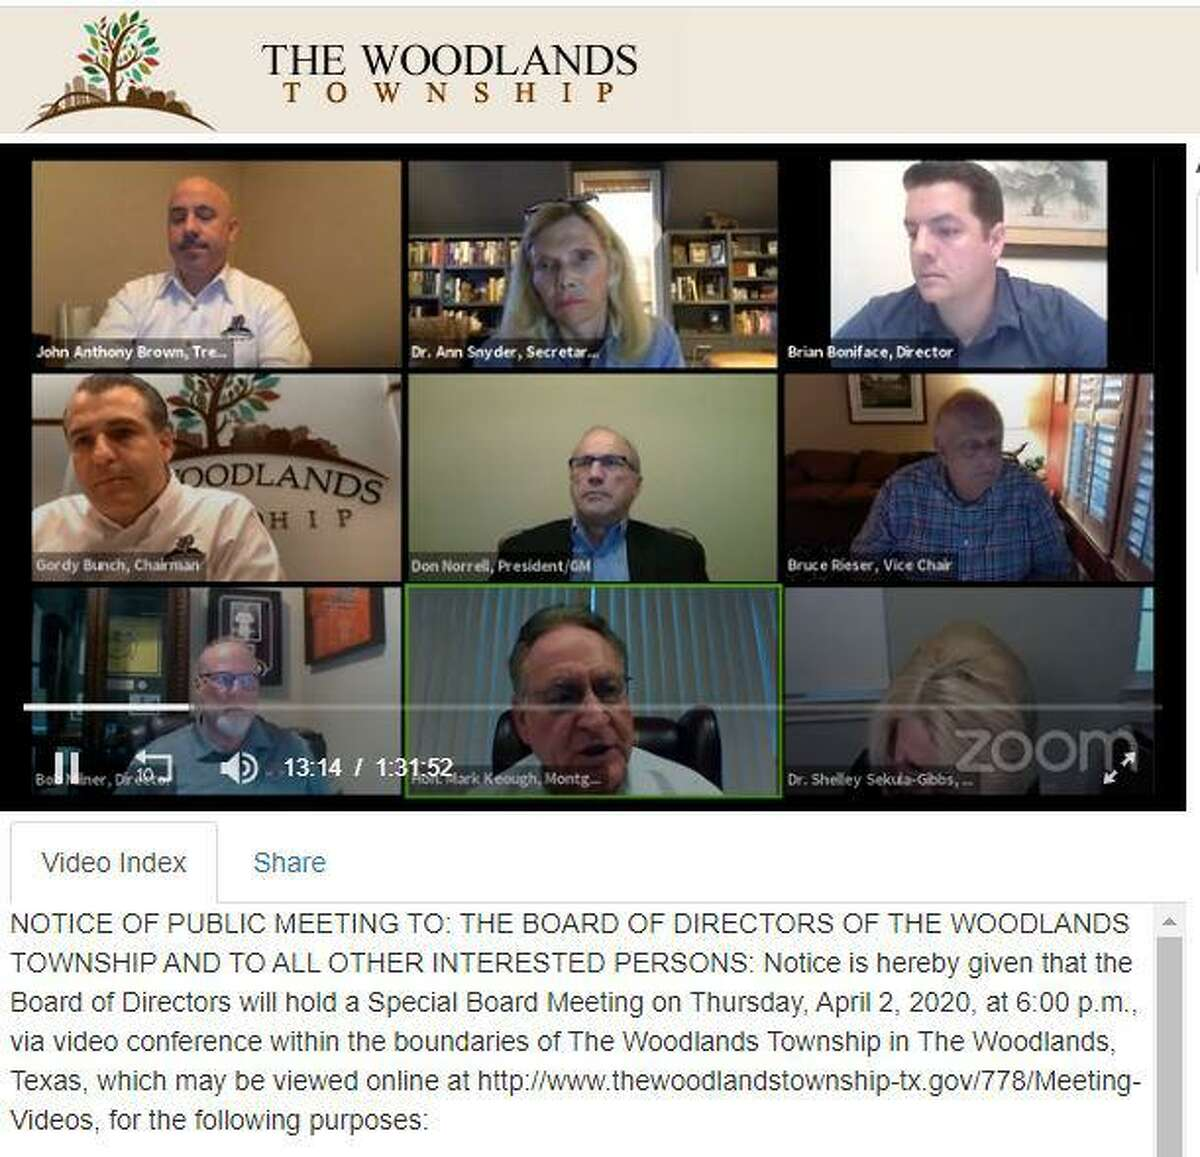 The Woodlands Township Board of Directors hosted another online virtual meeting on Thursday, April 2. In this image from the 'Zoom' videoconference call, Montgomery County Judge Mark Keough gives the board an update on a range of COVID-19 issues.